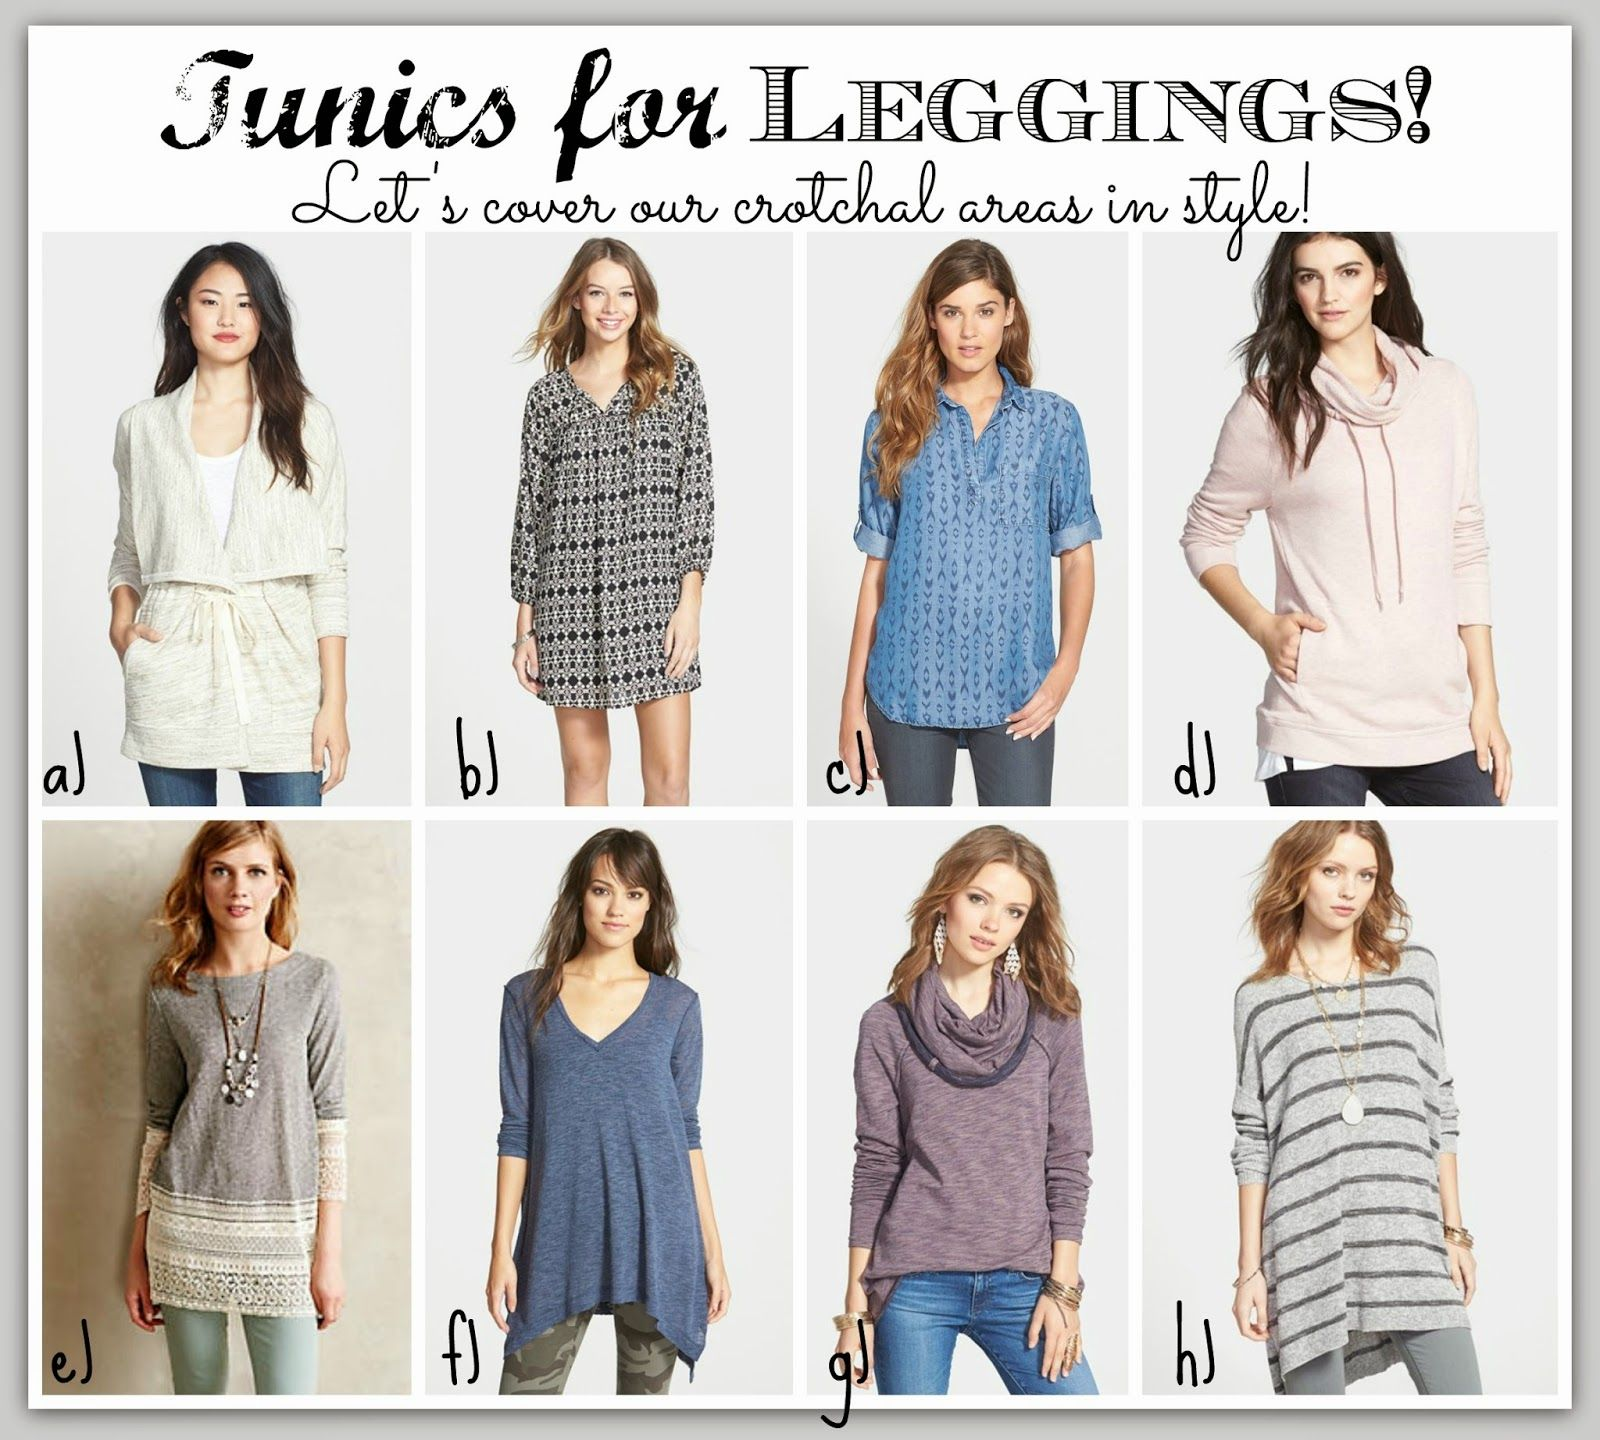 This post has LOTS AND LOTS of great ideas for tunics that are ...